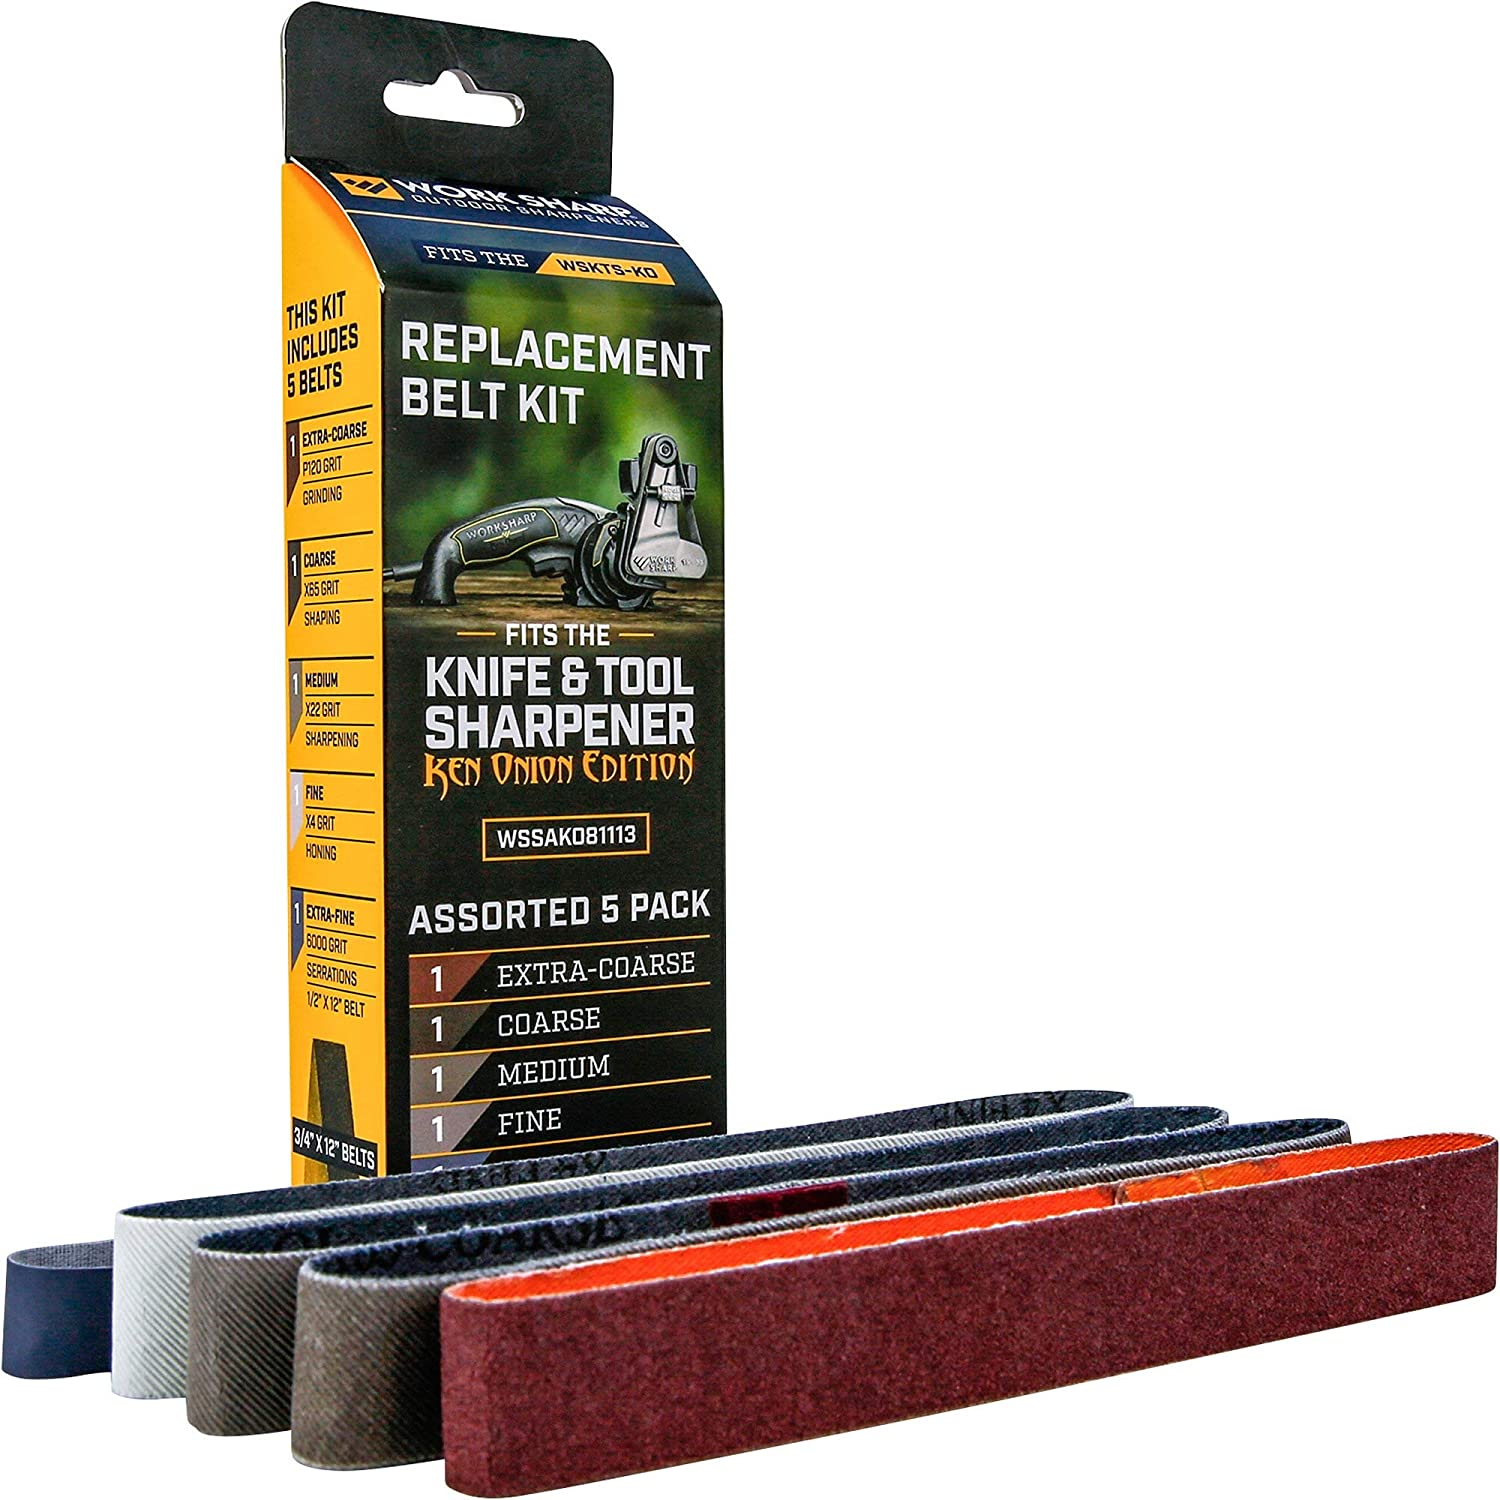 Official Replacement Belt Kit for the Work Sharp Knife and Tool Sharpener Ken Onion Edition - Work Sharp Tool Sharpener -